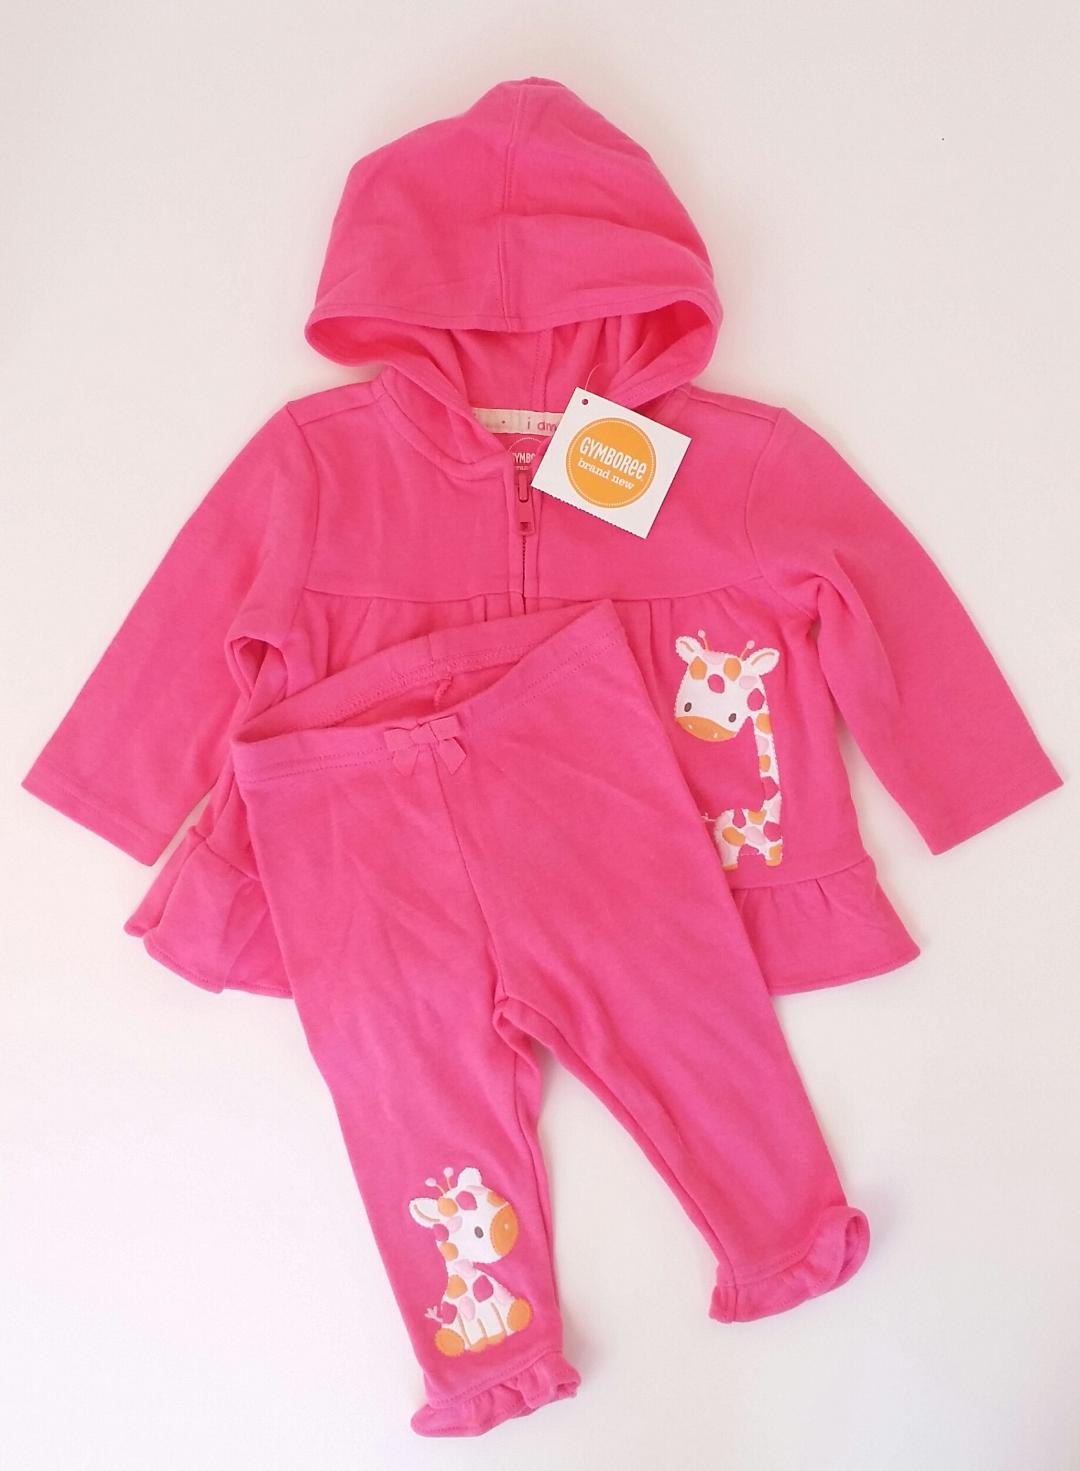 Gymboree-3-6-MONTHS-2-Piece-Outfit_2122222A.jpg